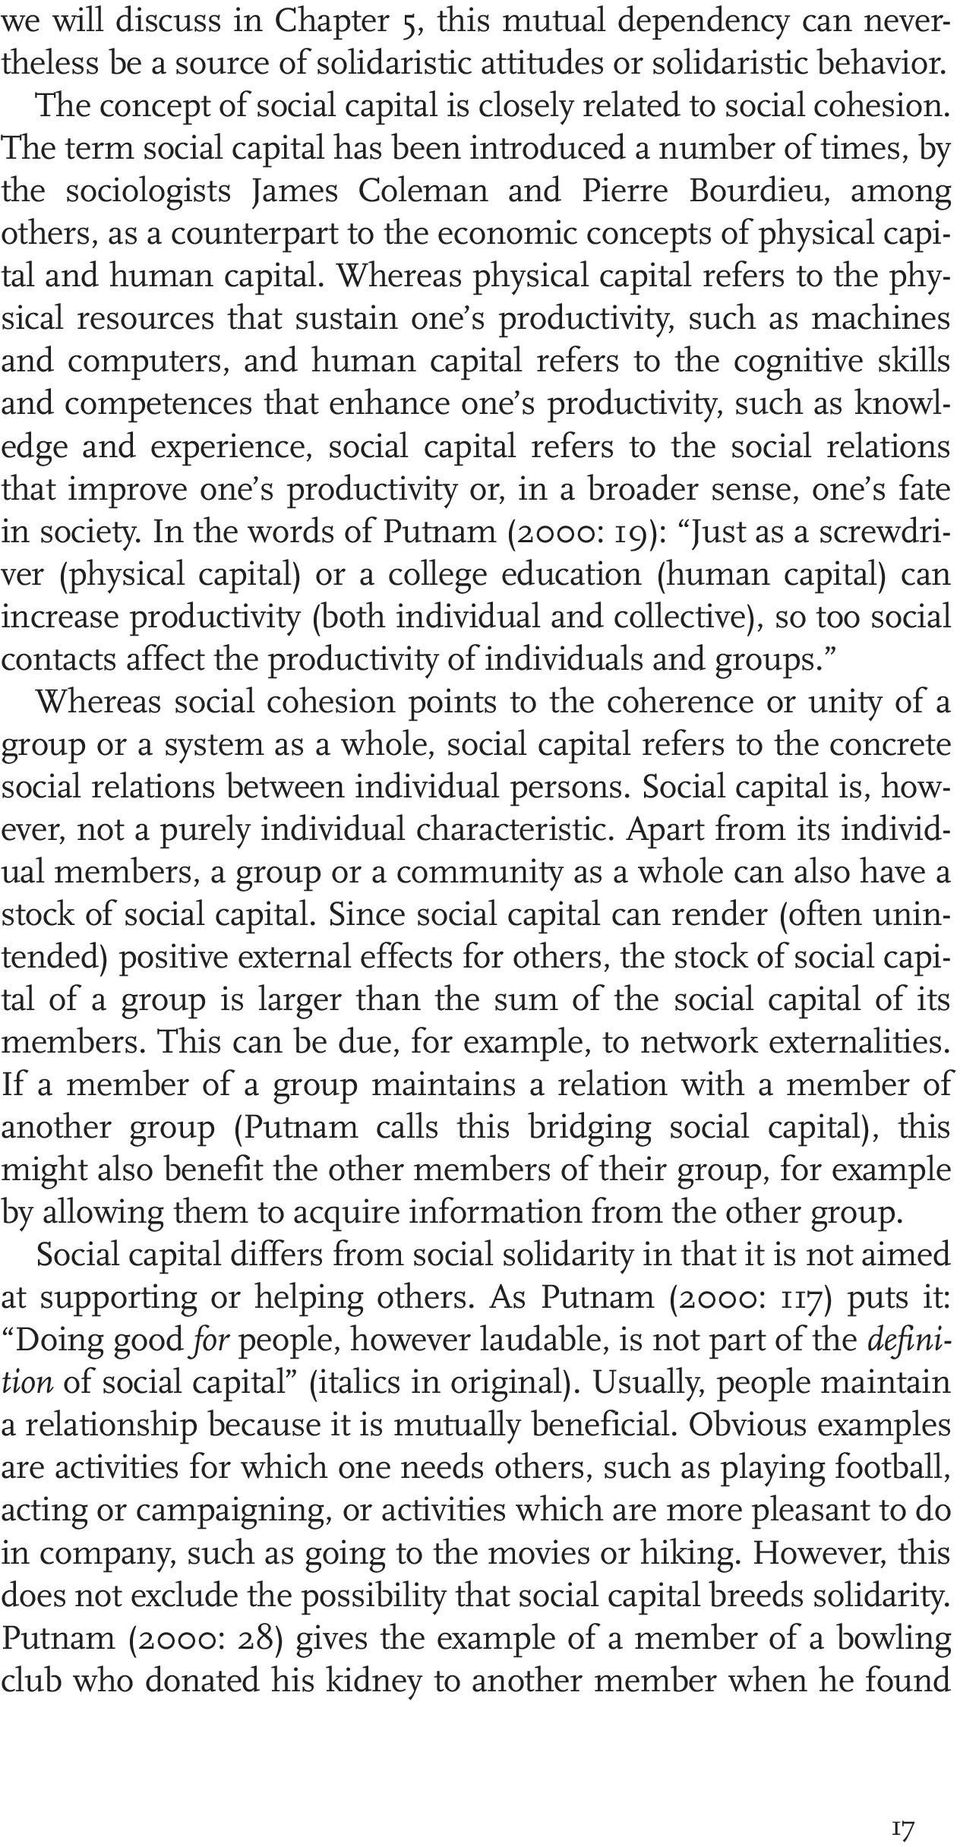 The term social capital has been introduced a number of times, by the sociologists James Coleman and Pierre Bourdieu, among others, as a counterpart to the economic concepts of physical capital and